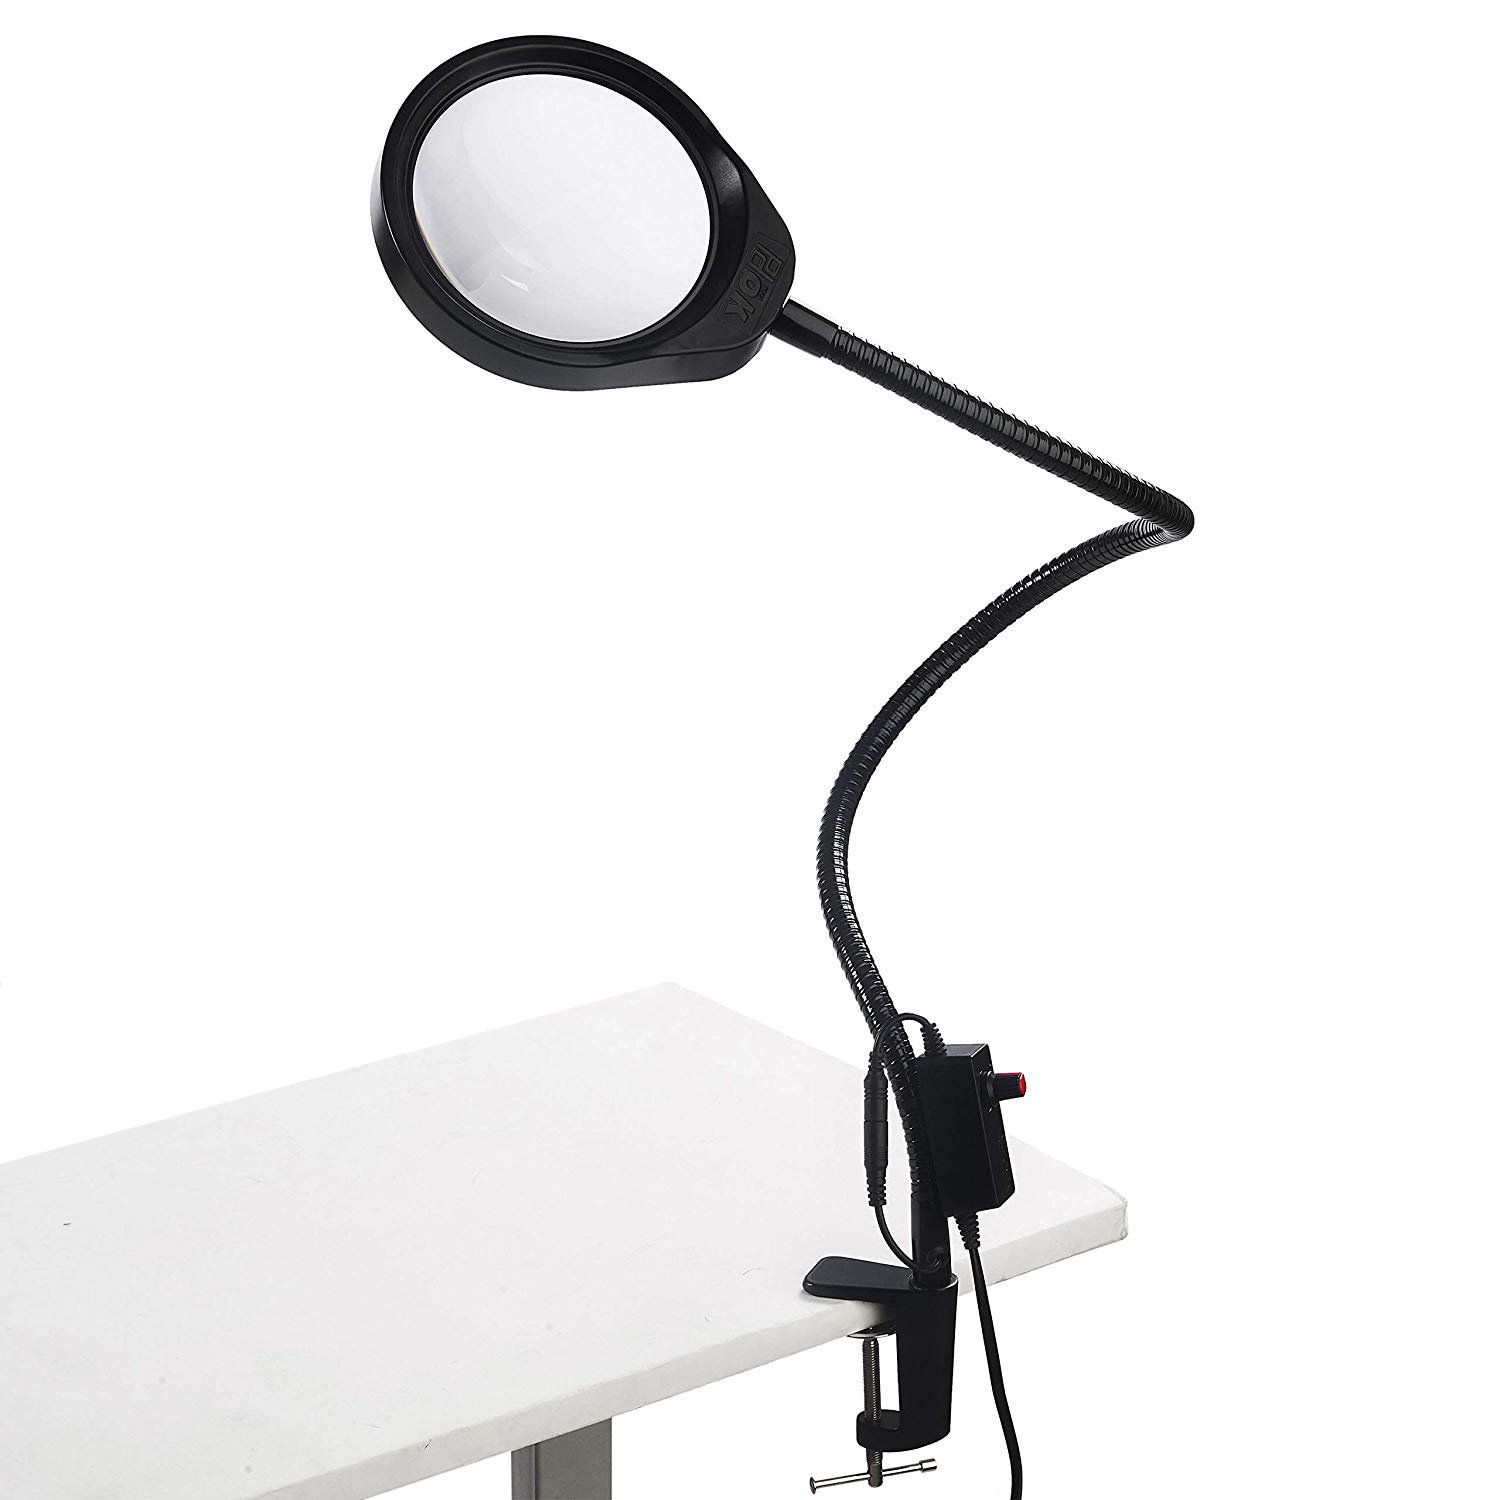 LED Illuminating Magnifier 10x 20x Optical Glass Desk Clip on Magnifying Glass Lamp for PCB Inspection